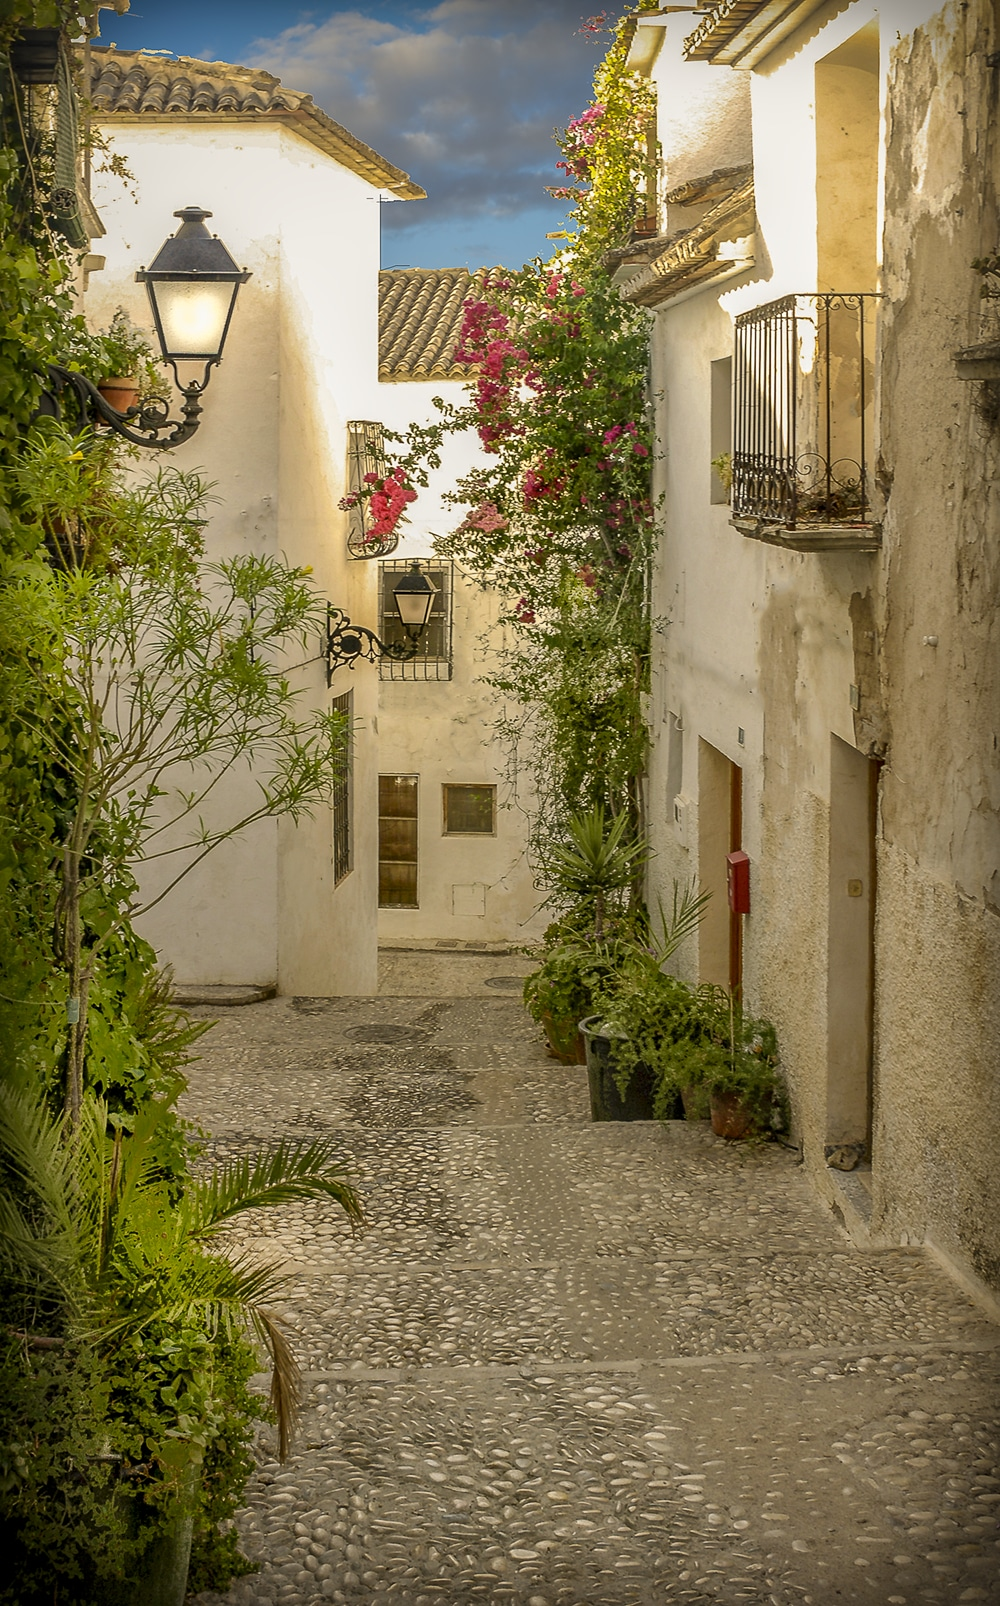 About Altea Old Town Spain